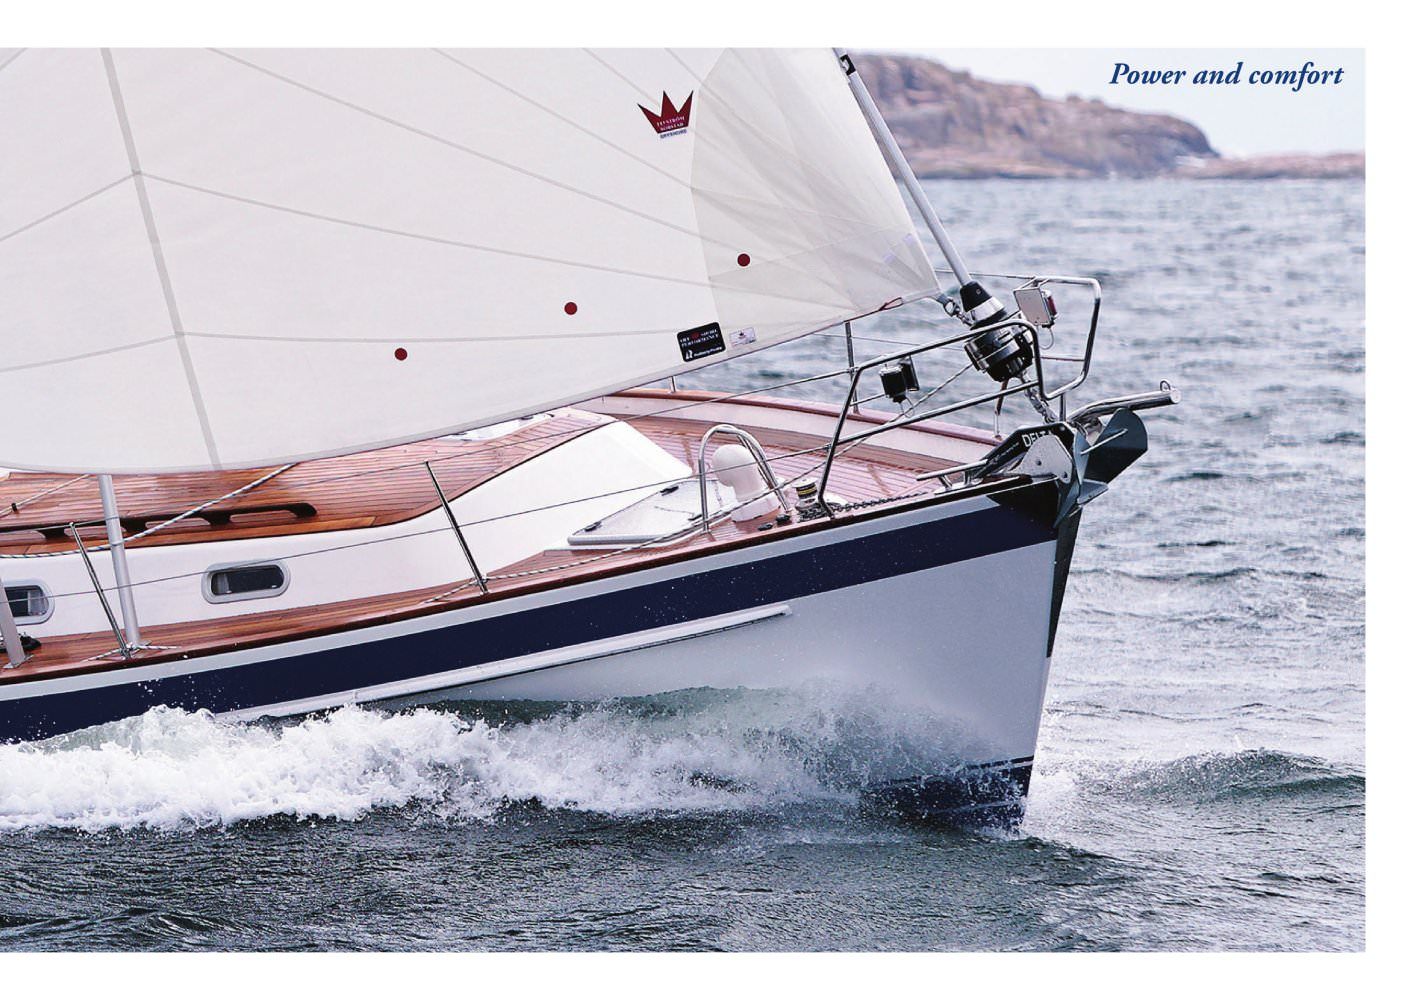 See other catalogues for Hallberg-Rassy. You may also be interested in